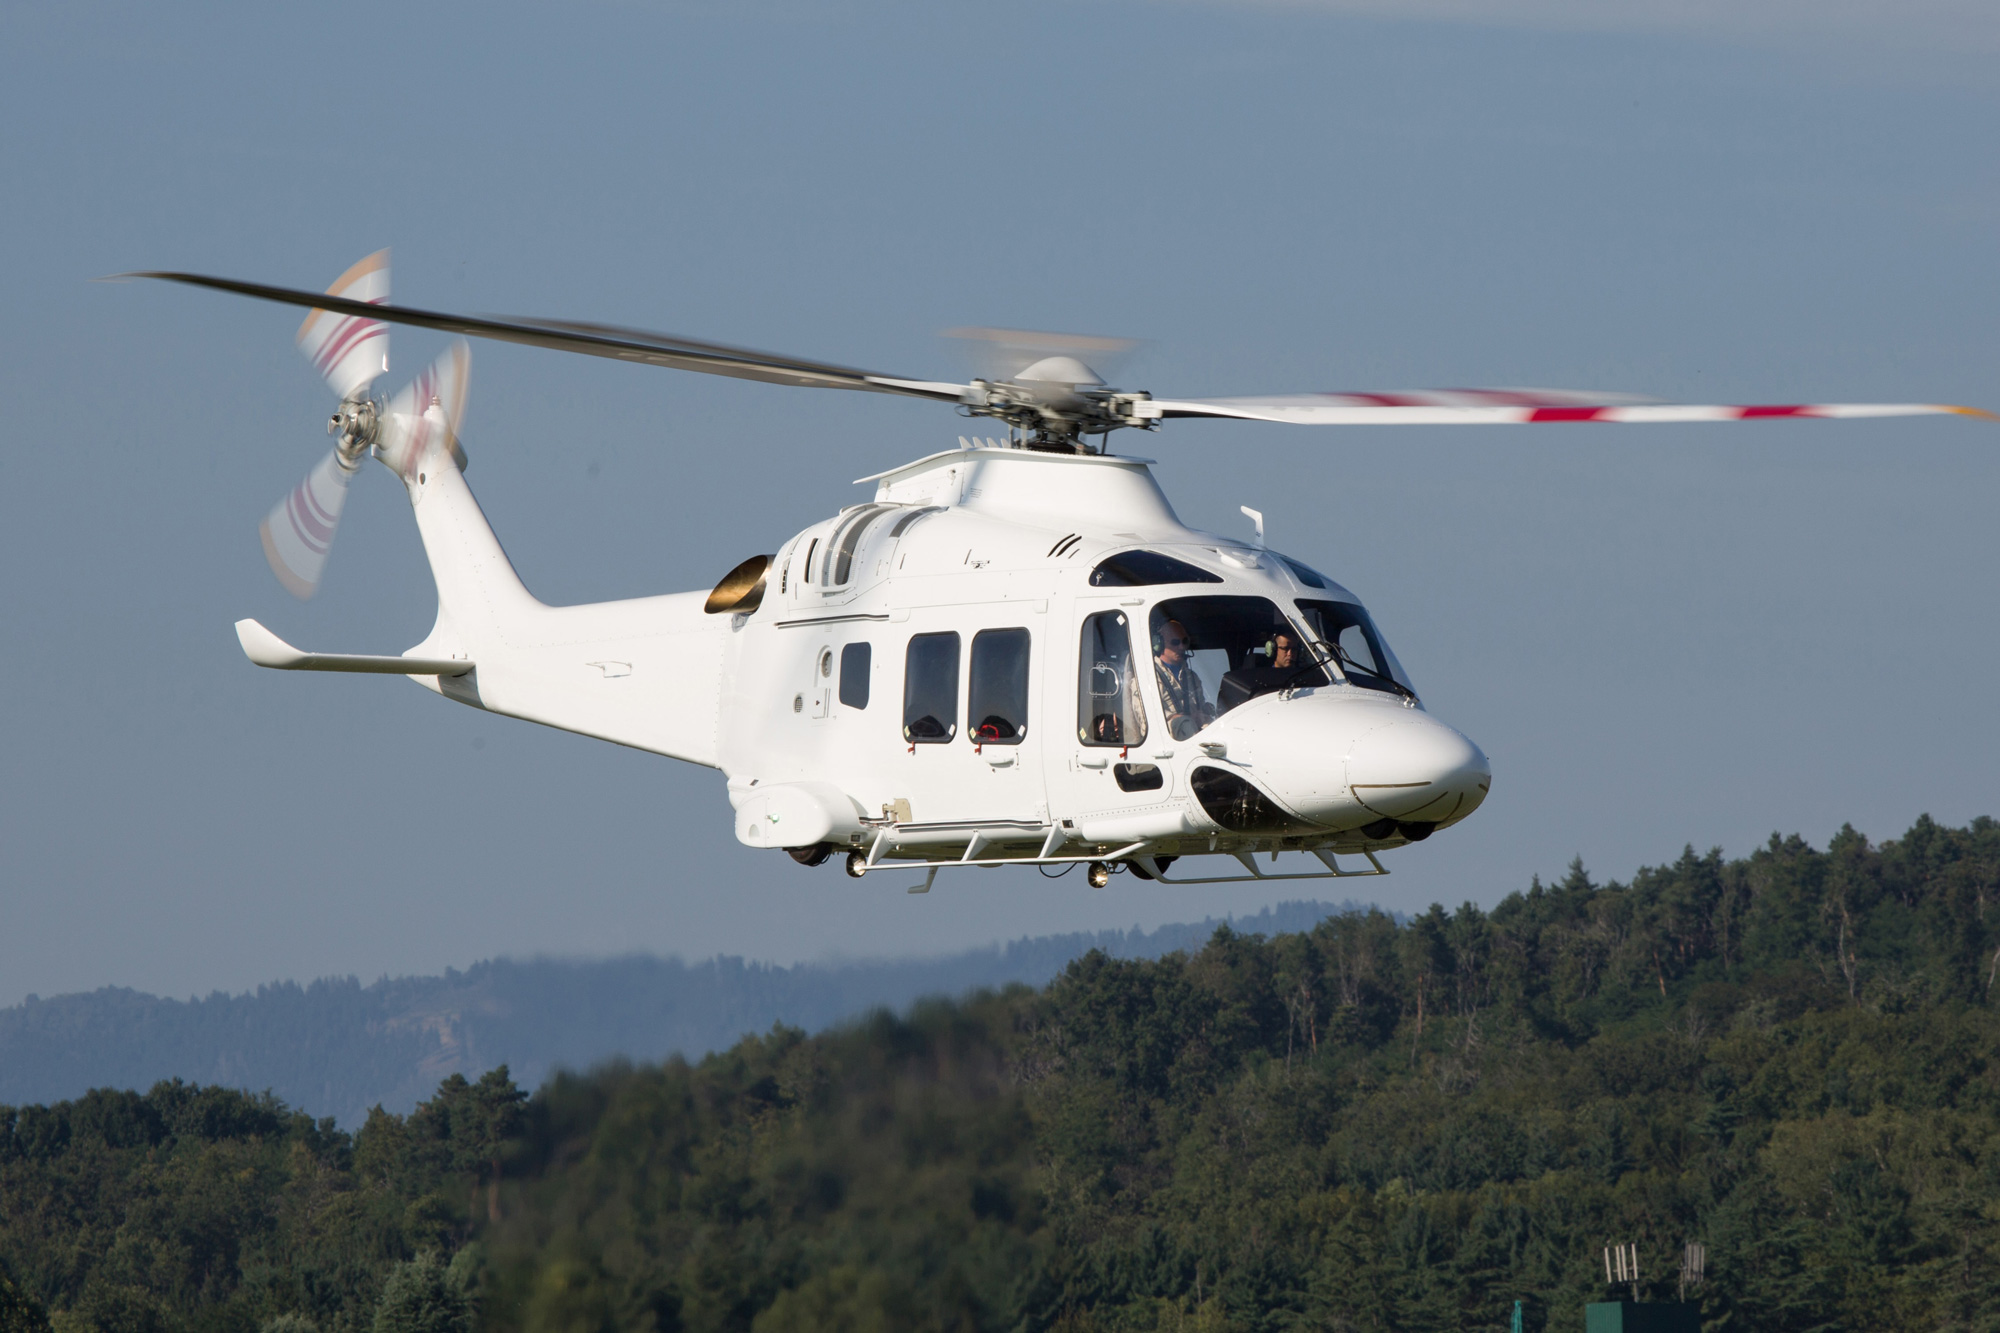 helicopter charter and training with Leonardo Aw169 Medium Twin Helo Gets Faa Nod on Vietnam Buys More Defense Equipment Israel likewise Sale plans as well Singapore Close Super Puma Replacement Choice besides Air Bp 2 together with Britain France Jointly Develop Future  bat Air System.